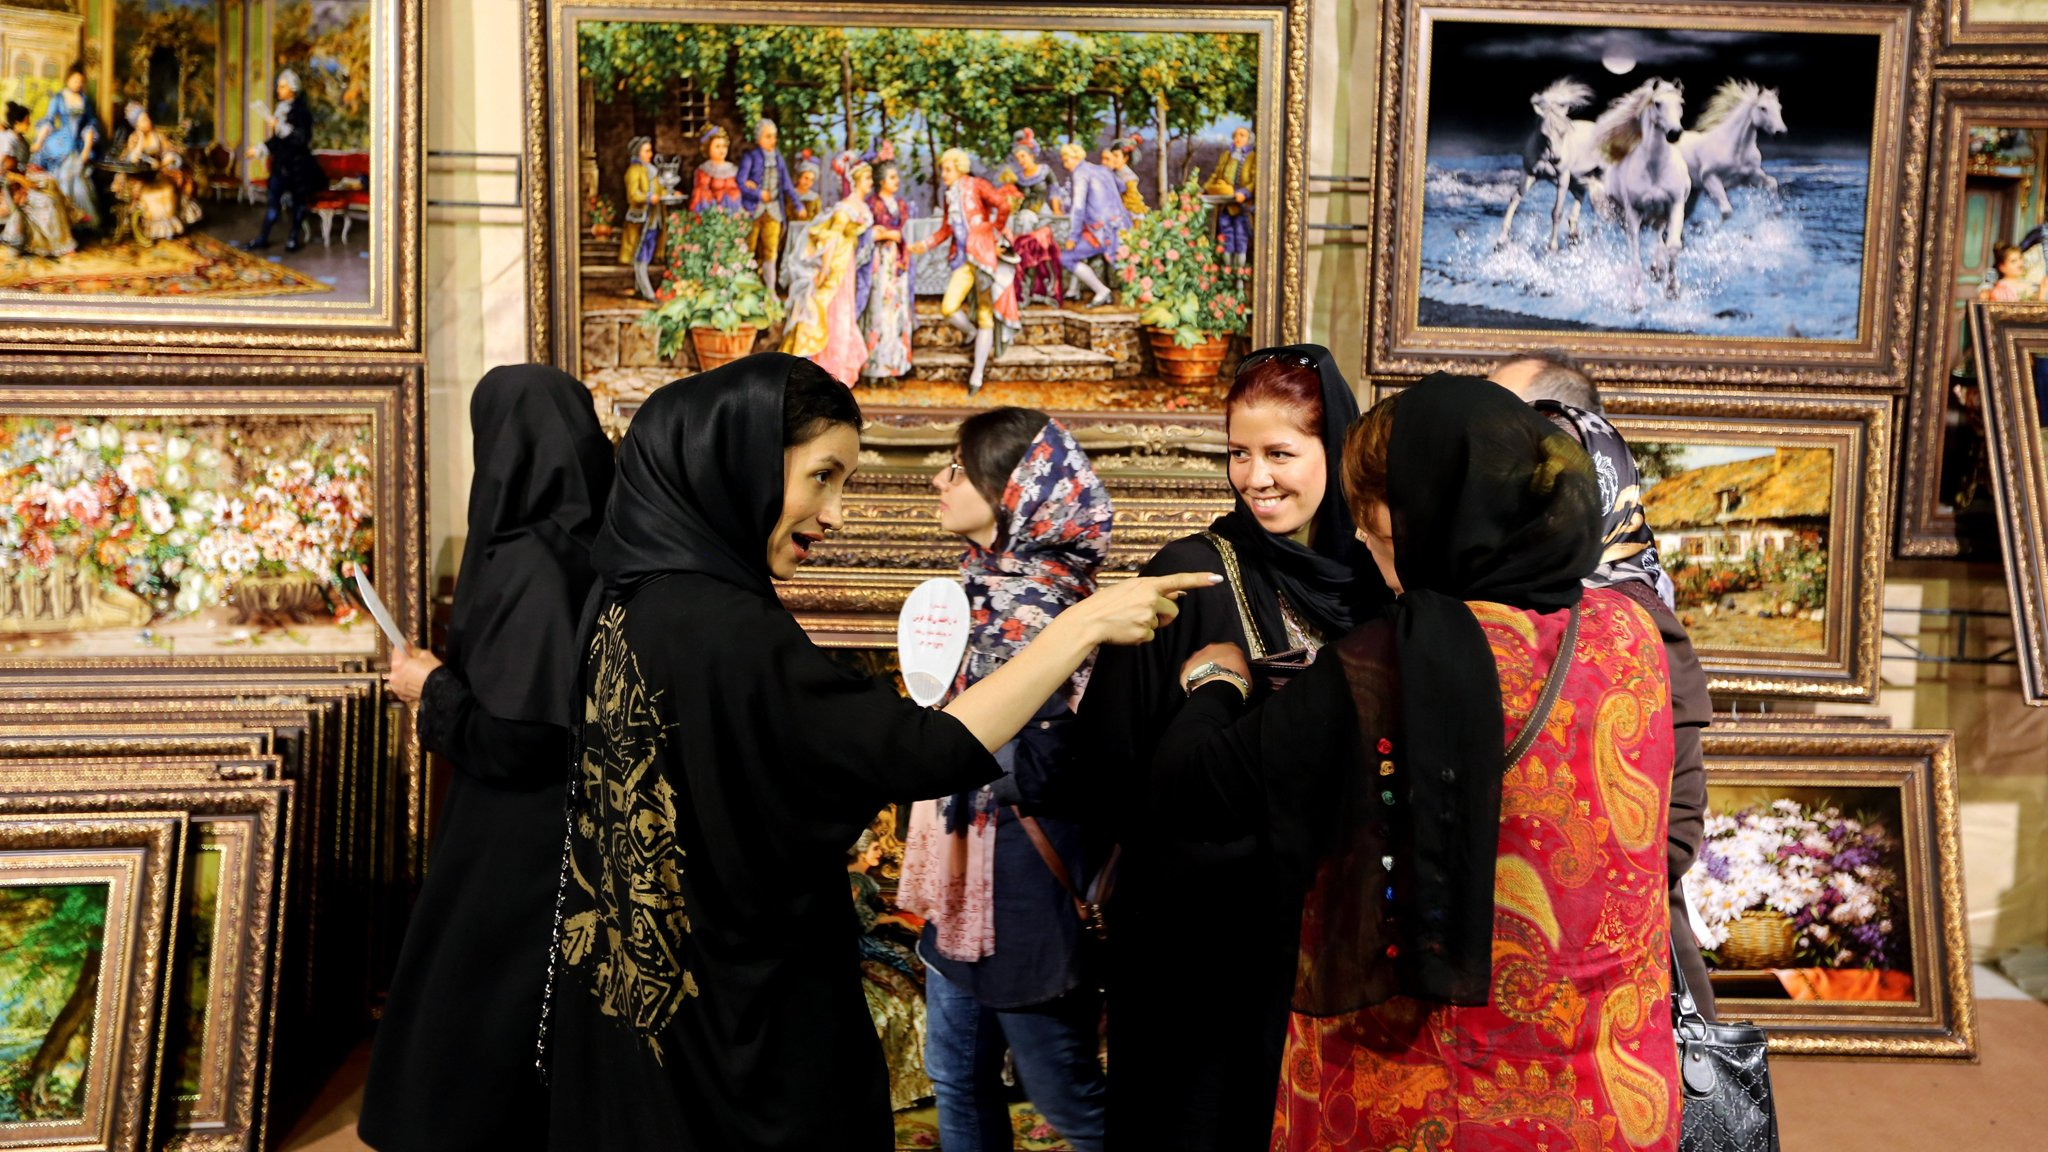 Iranian women lift headscarves in protest as discontent rises